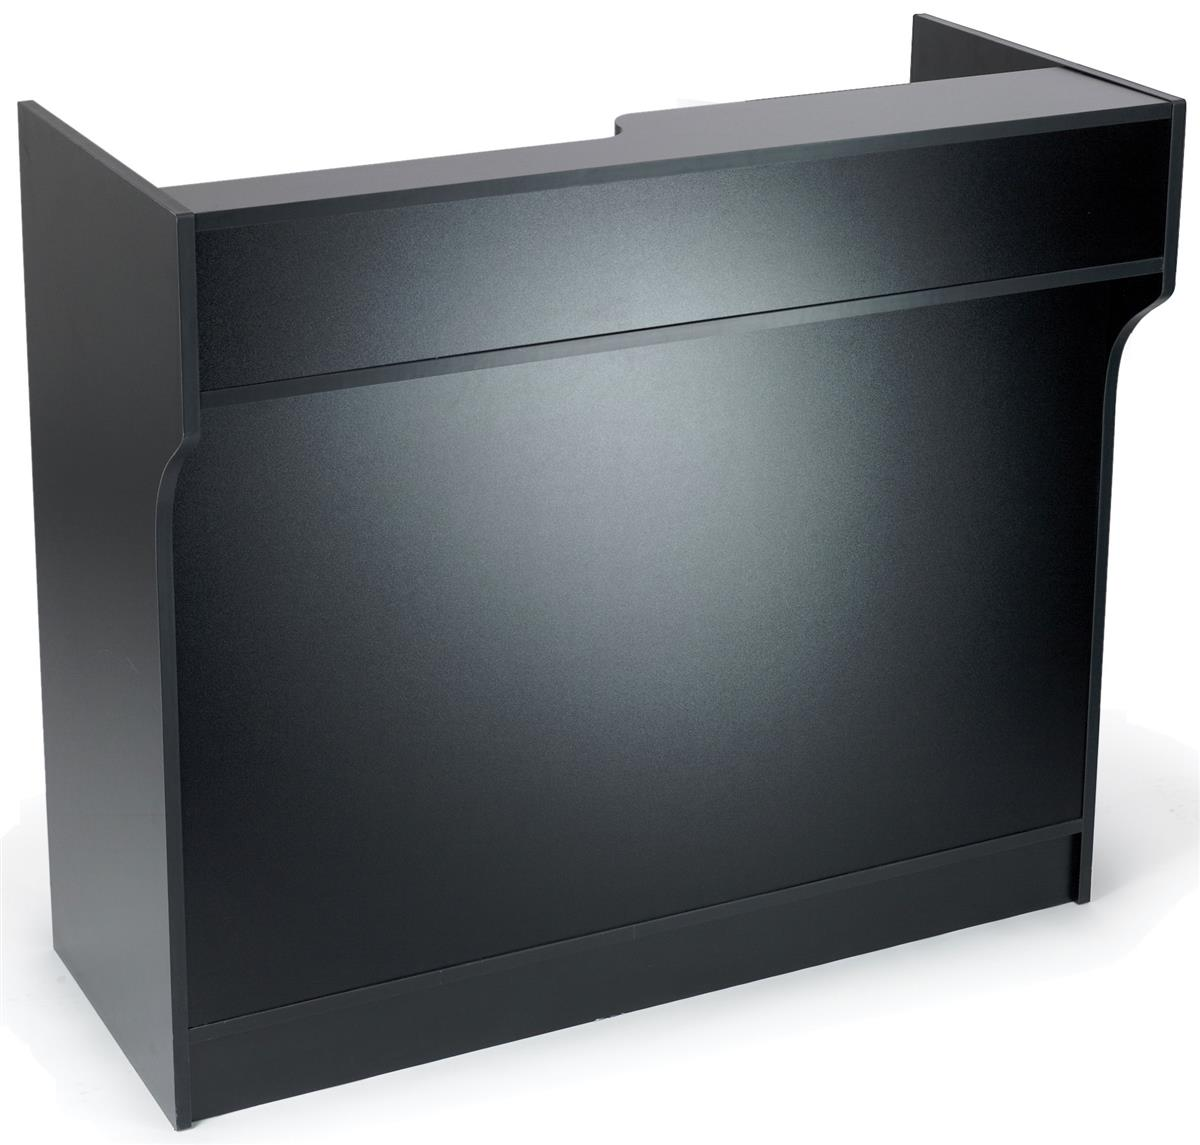 Black Register Stand Ledgetop Amp Melamine Construction